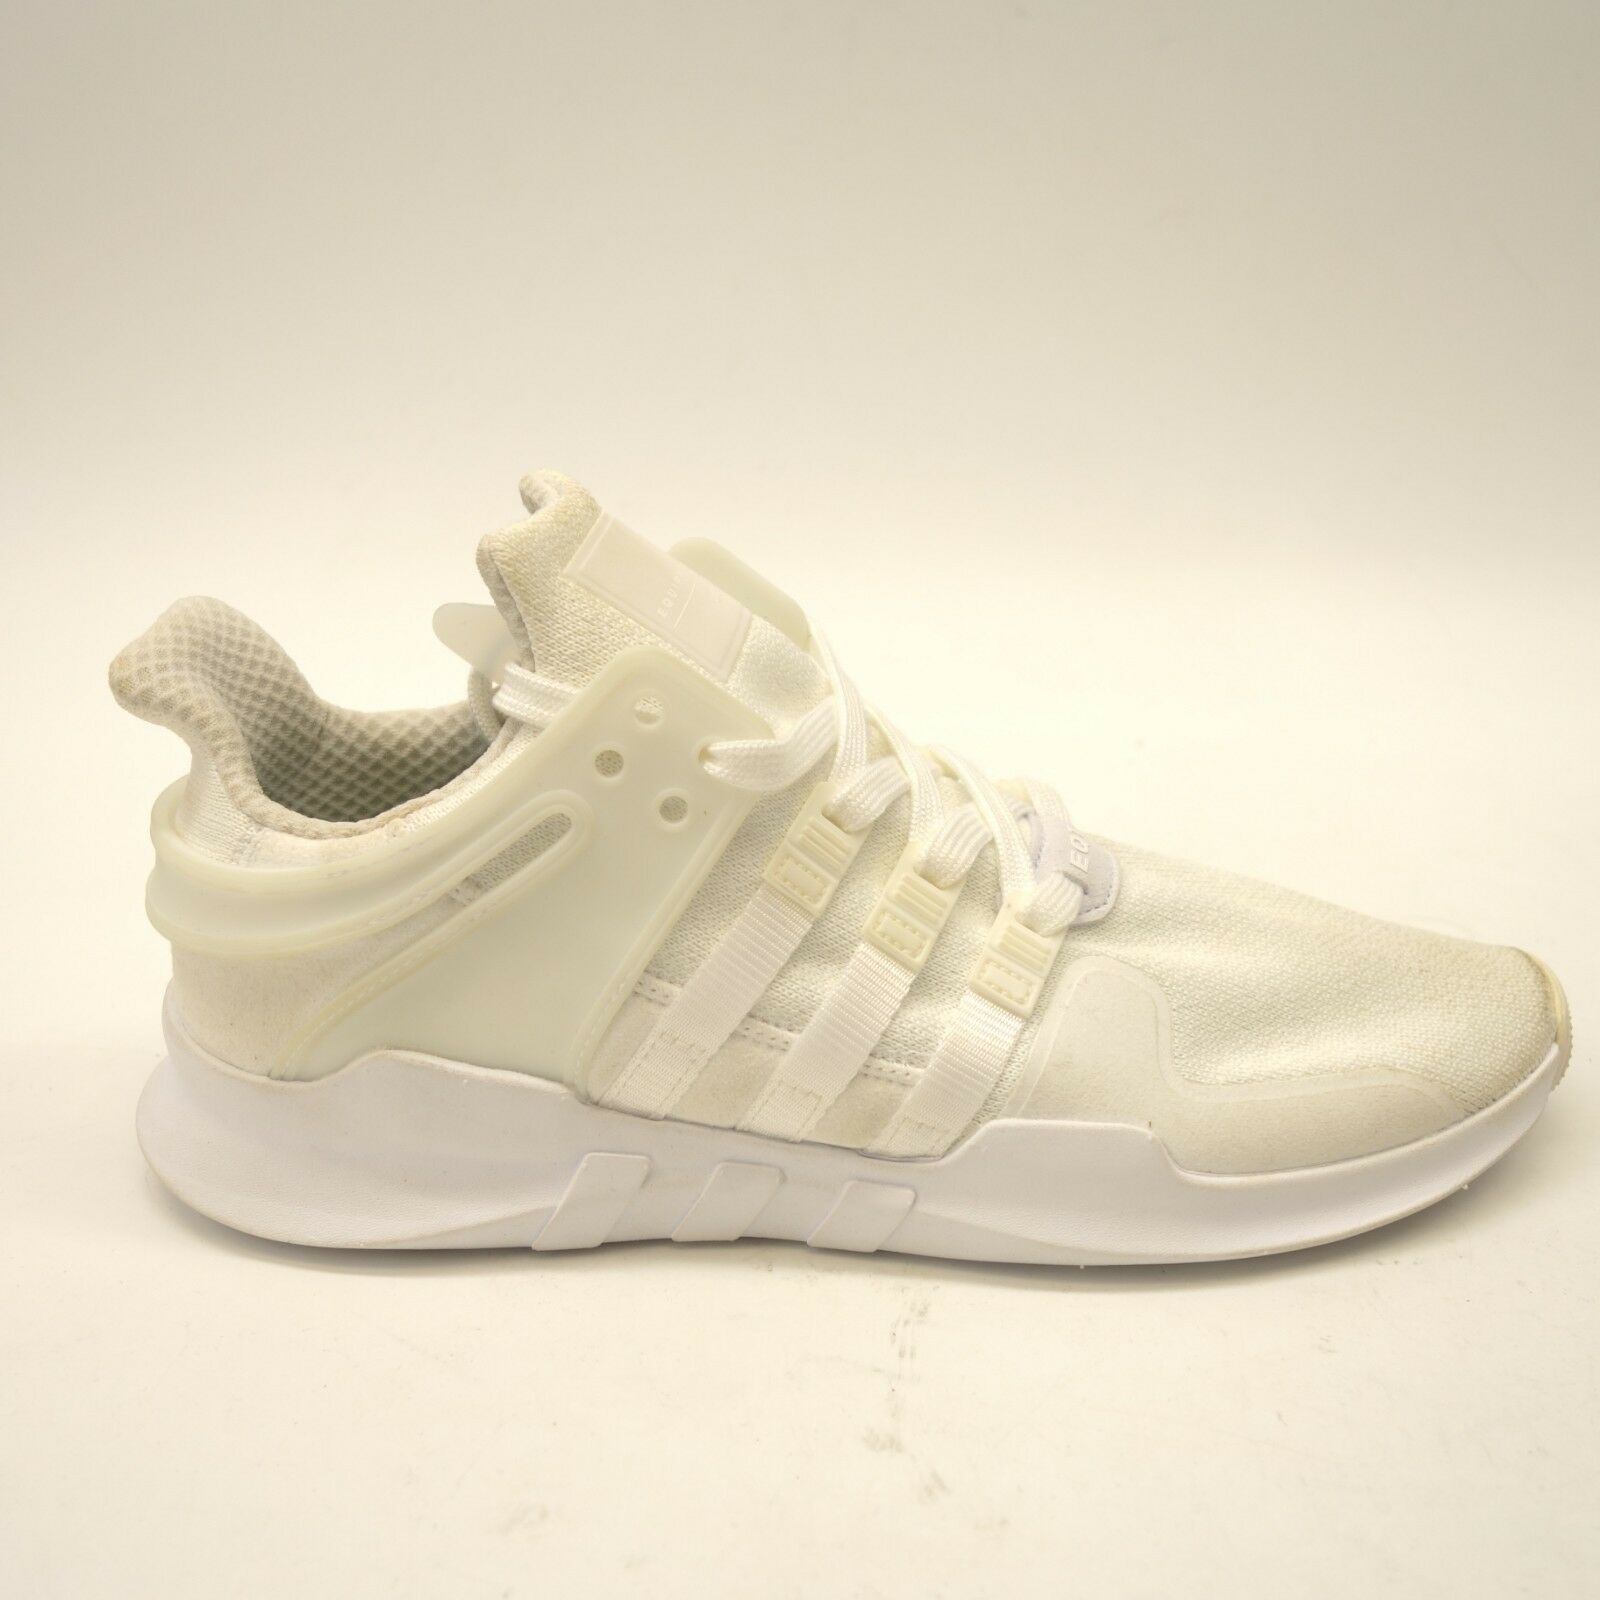 Adidas Mens Originals EQT Support ADV White Casual Running Sneaker shoes 9.5